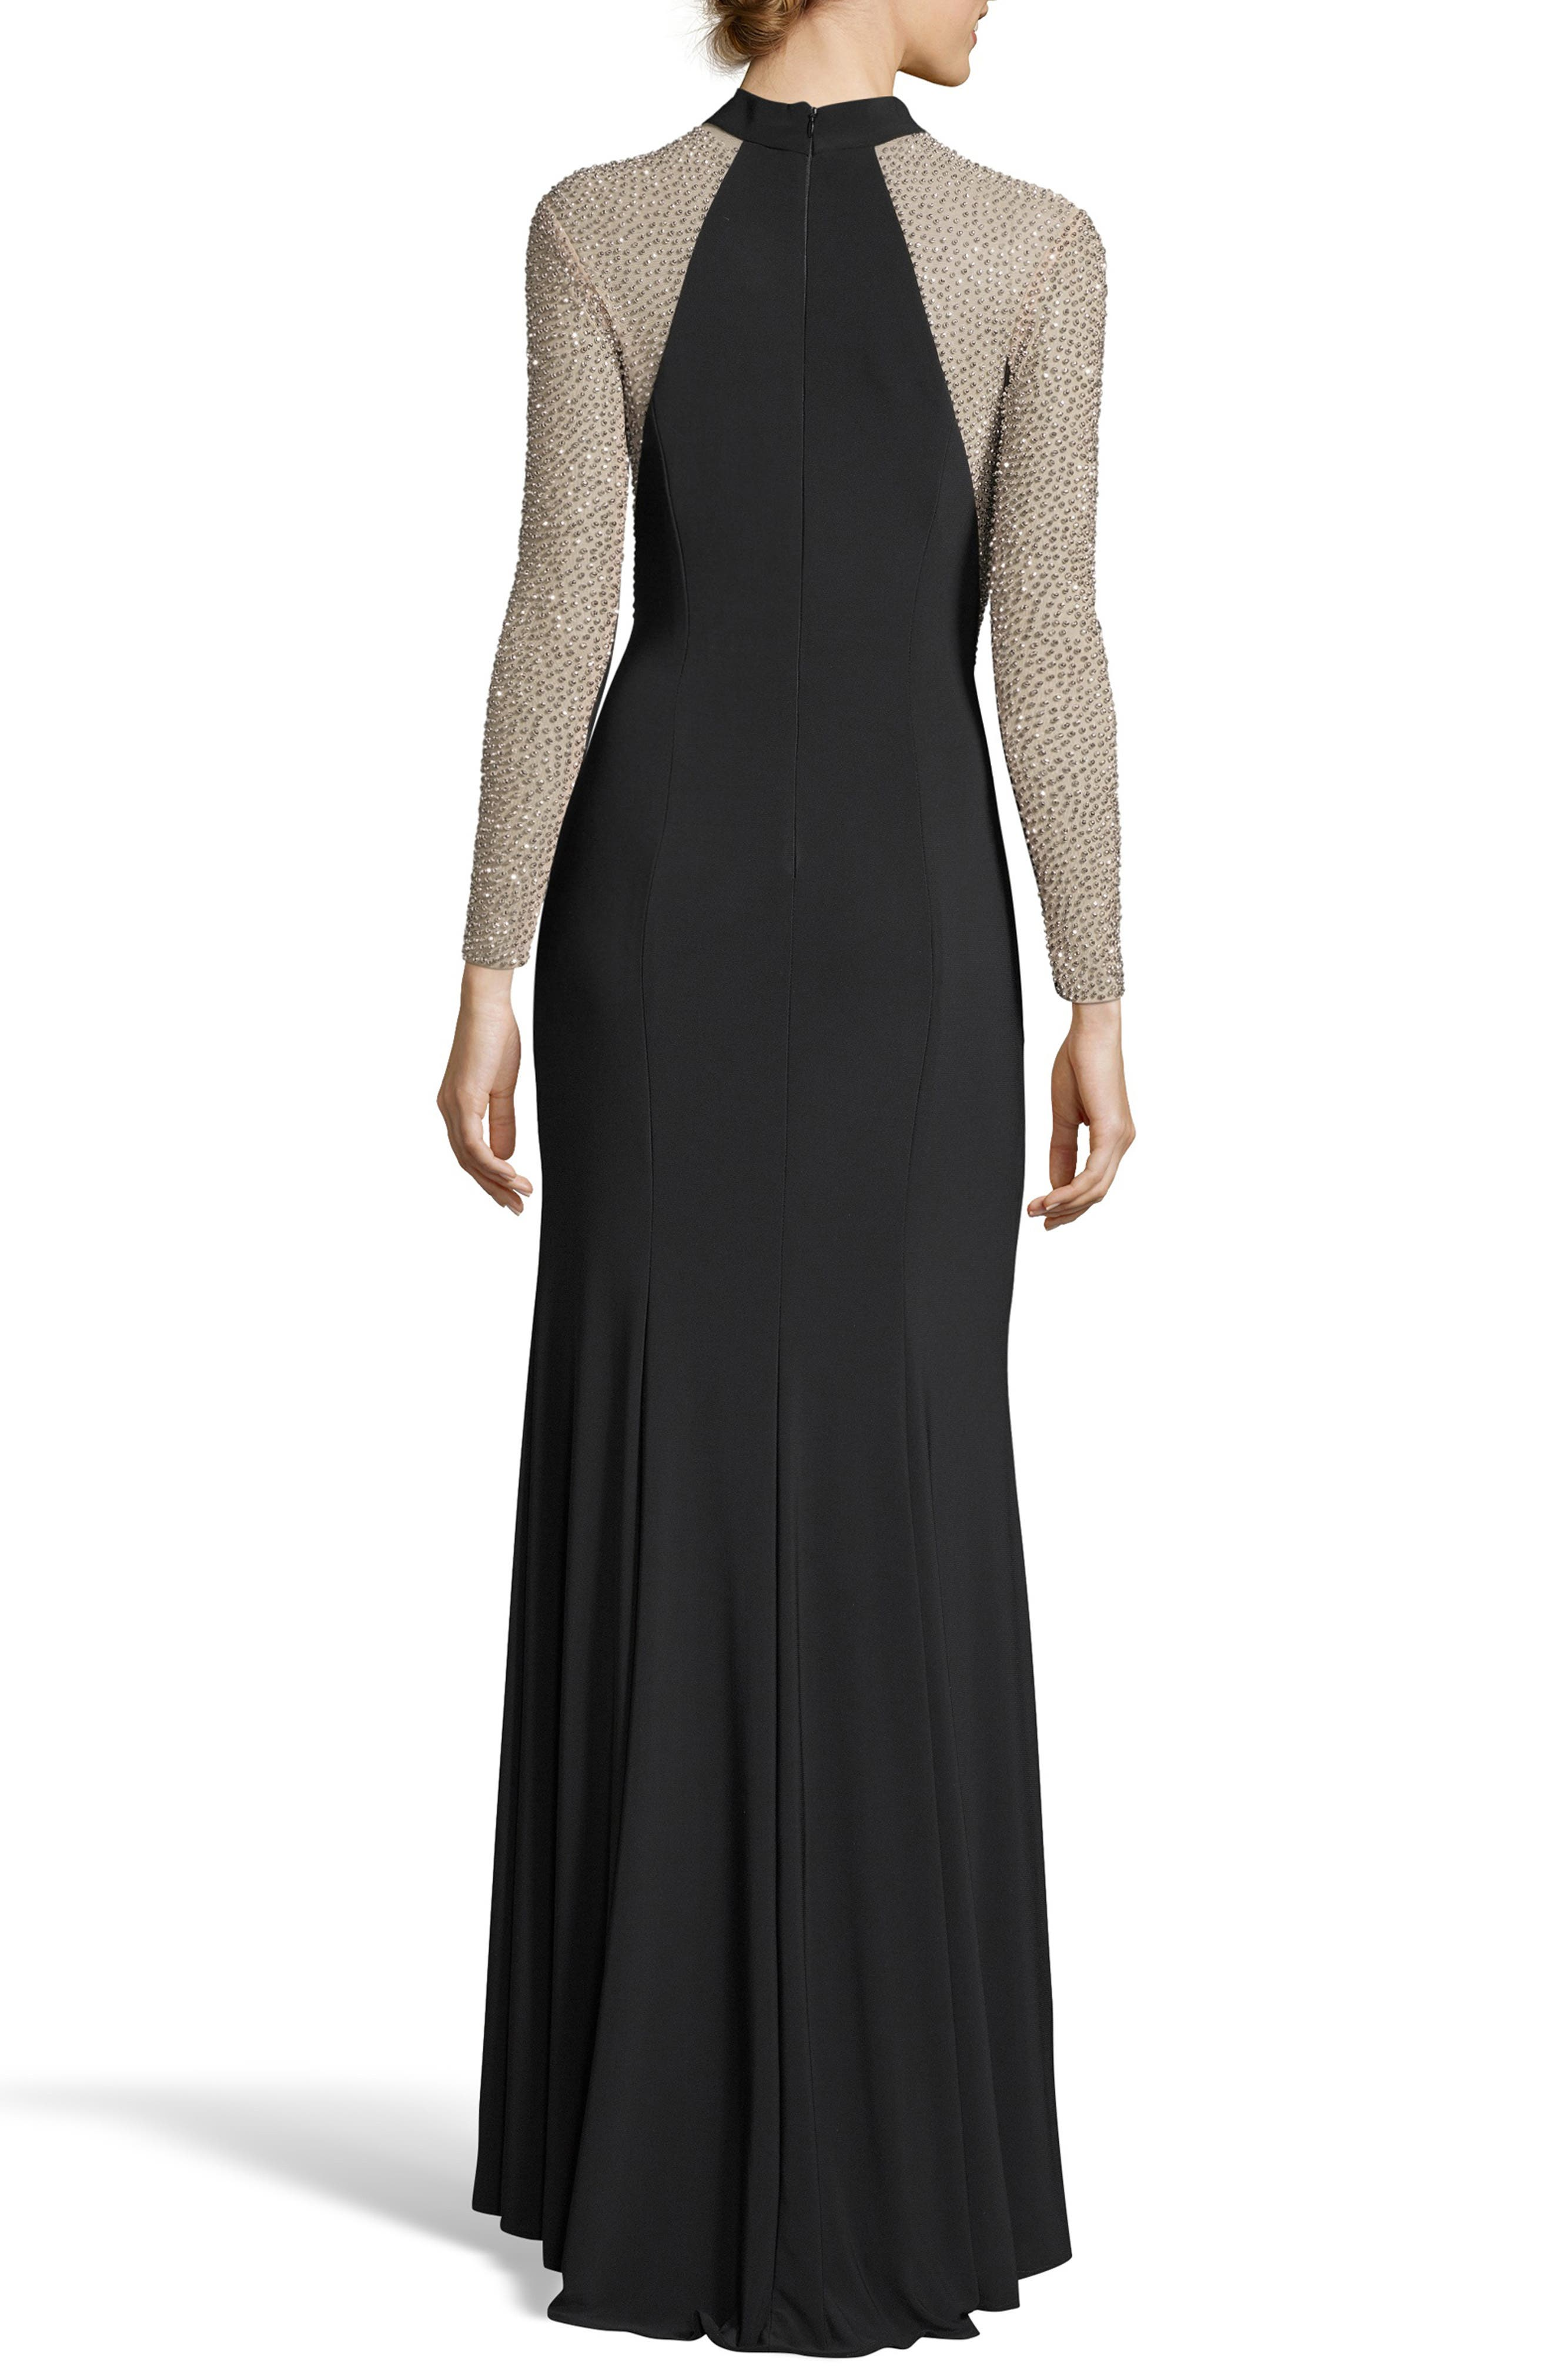 Ity Bead Embellished Jersey Gown,                             Alternate thumbnail 2, color,                             BLACK/ NUDE/ SILVER